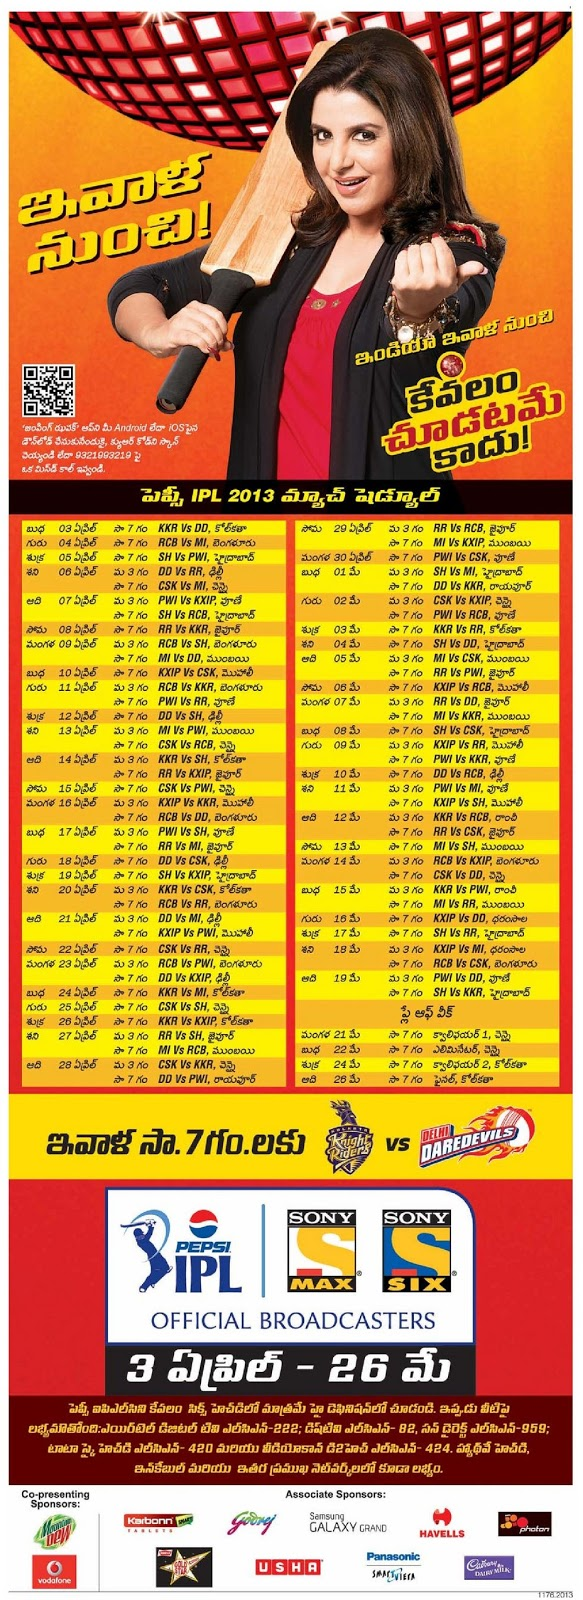 IPL 2013 SEASON SCHEDULE